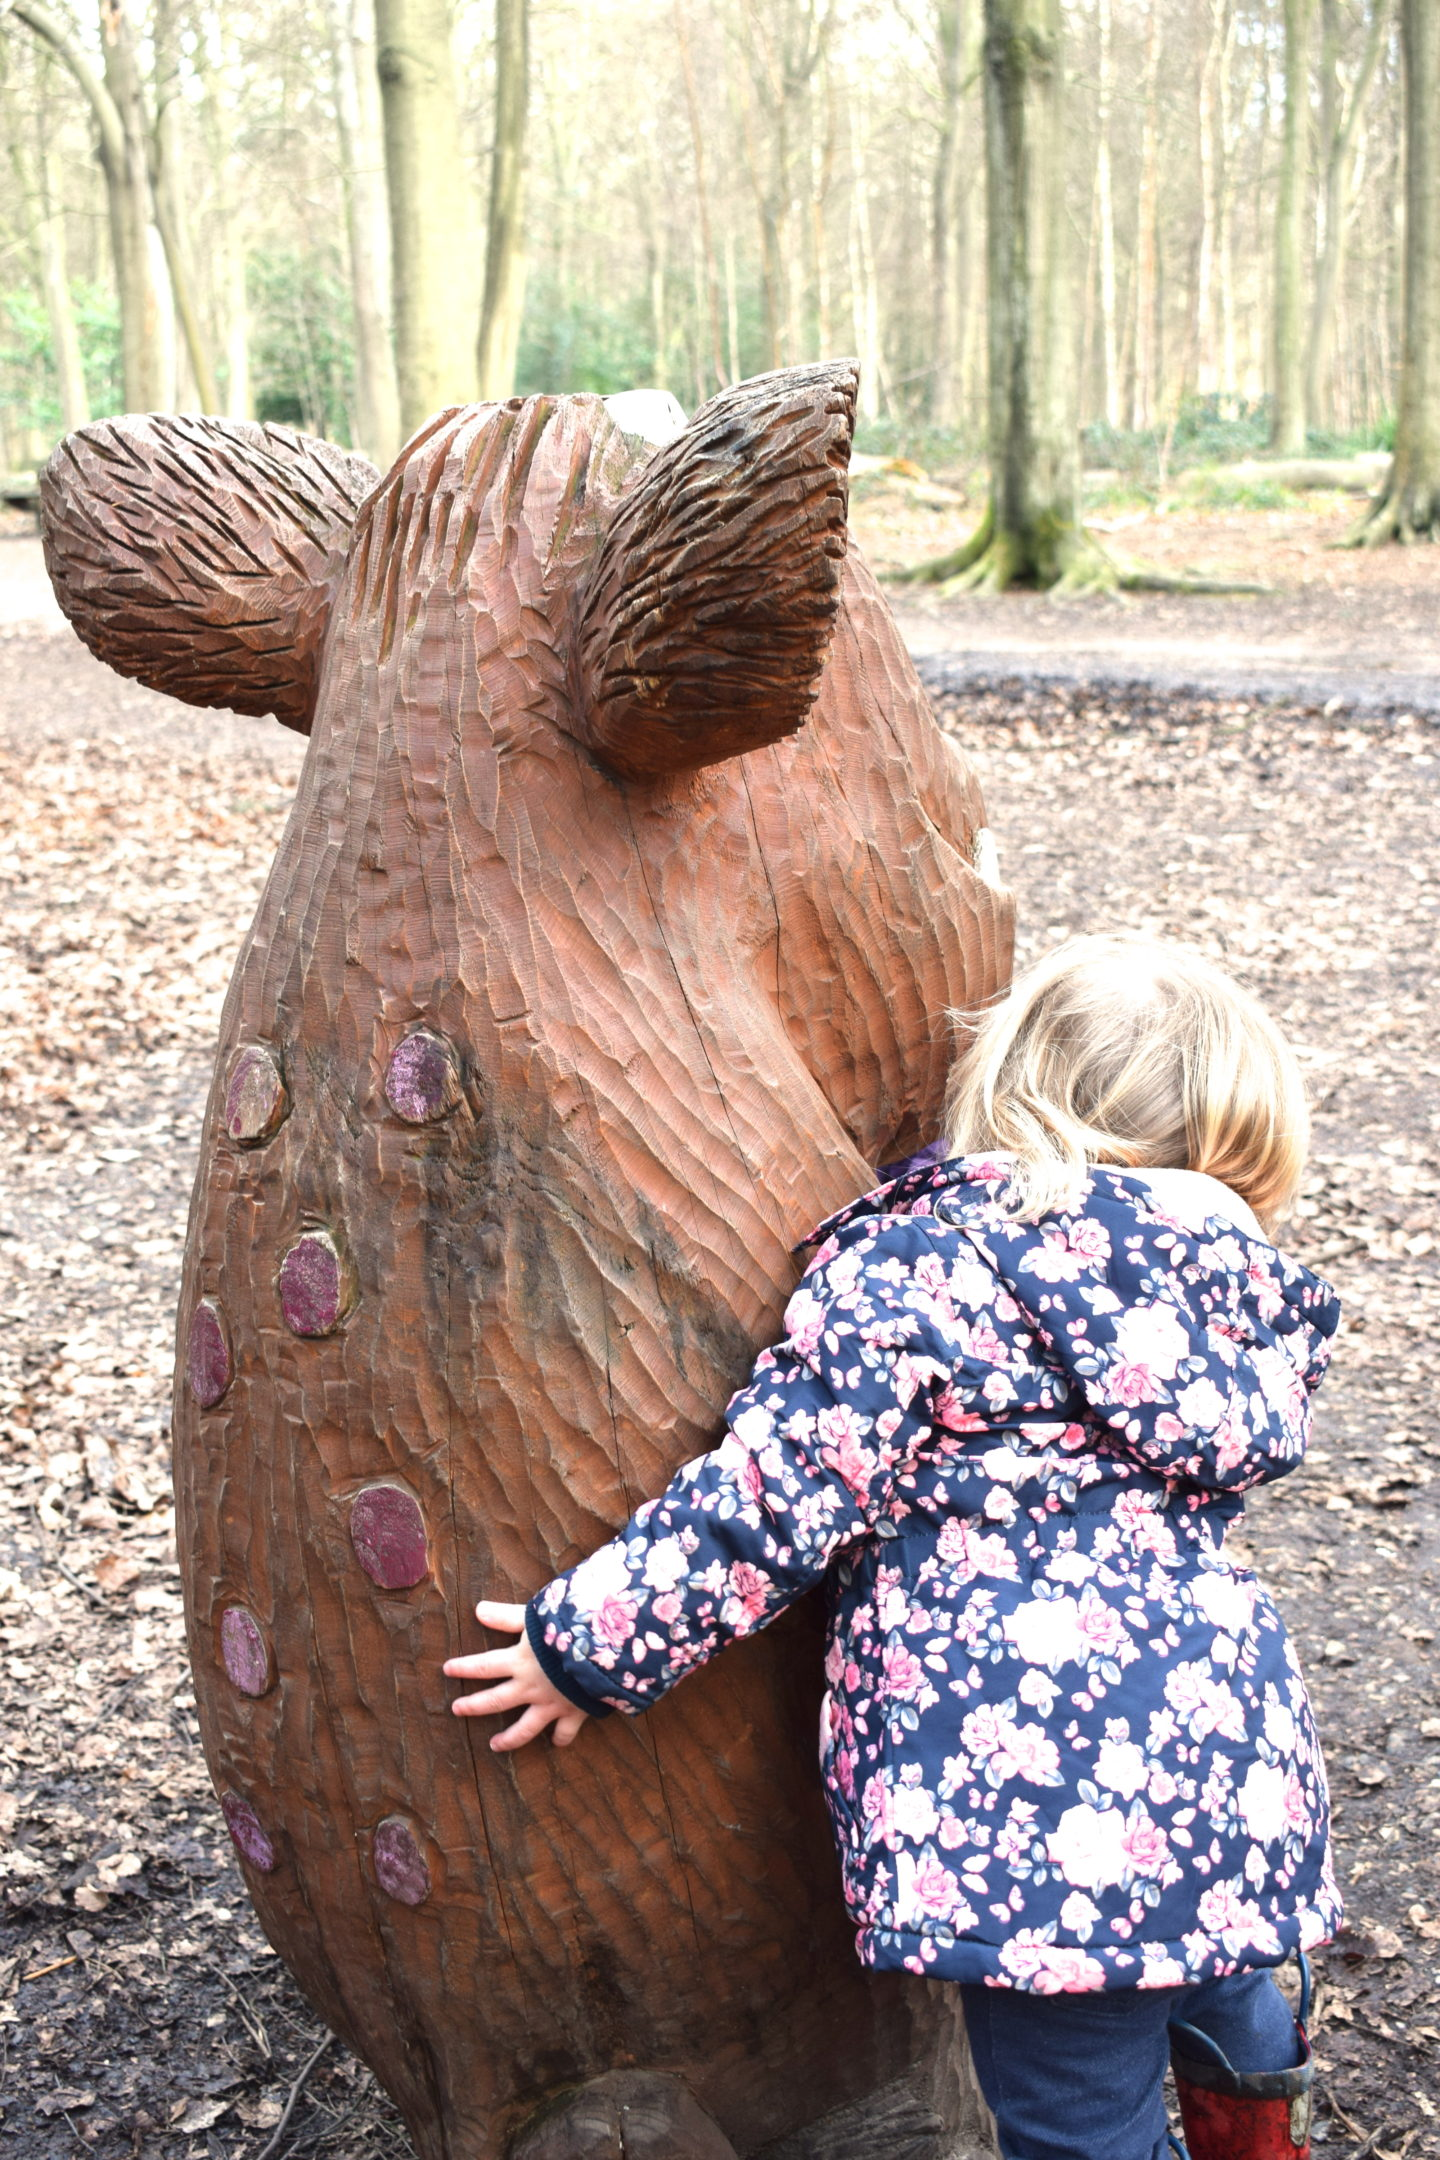 The Gruffalo Trail, Essex, Gruffalo's Child from behind with little girl cuddling it